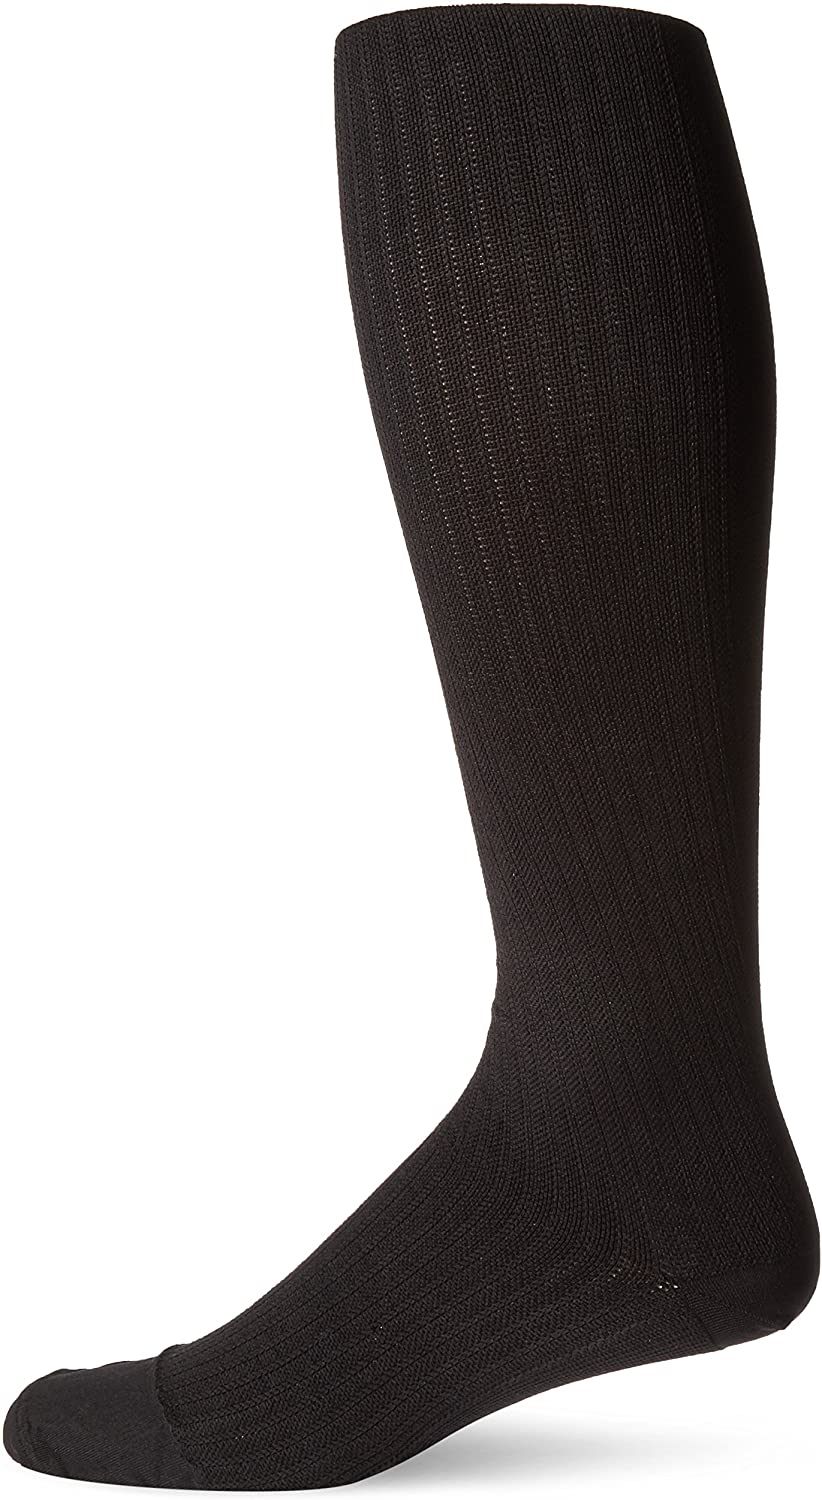 JOBST Mens Dress Knee High Closed Toe Compression Stockings, Professional Quality, Stylish Legware for All Day Comfort, with Elegant Rib Design, Compression Class- 8-15